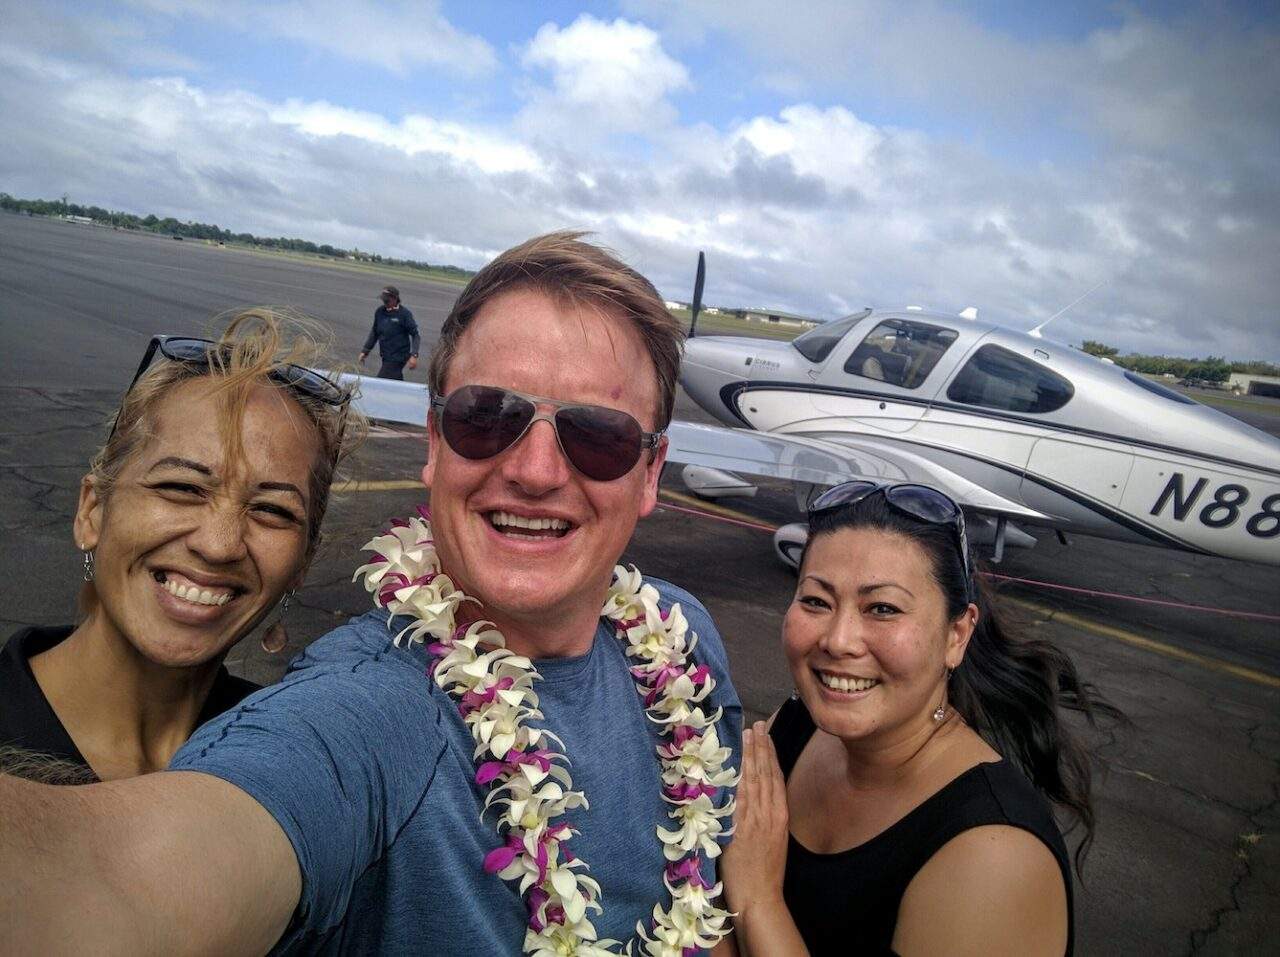 A4 – I love the USA – some countries make you sit on the tarmac for hours – our people greet you with a lei – thank you Shnna and Candiceleee